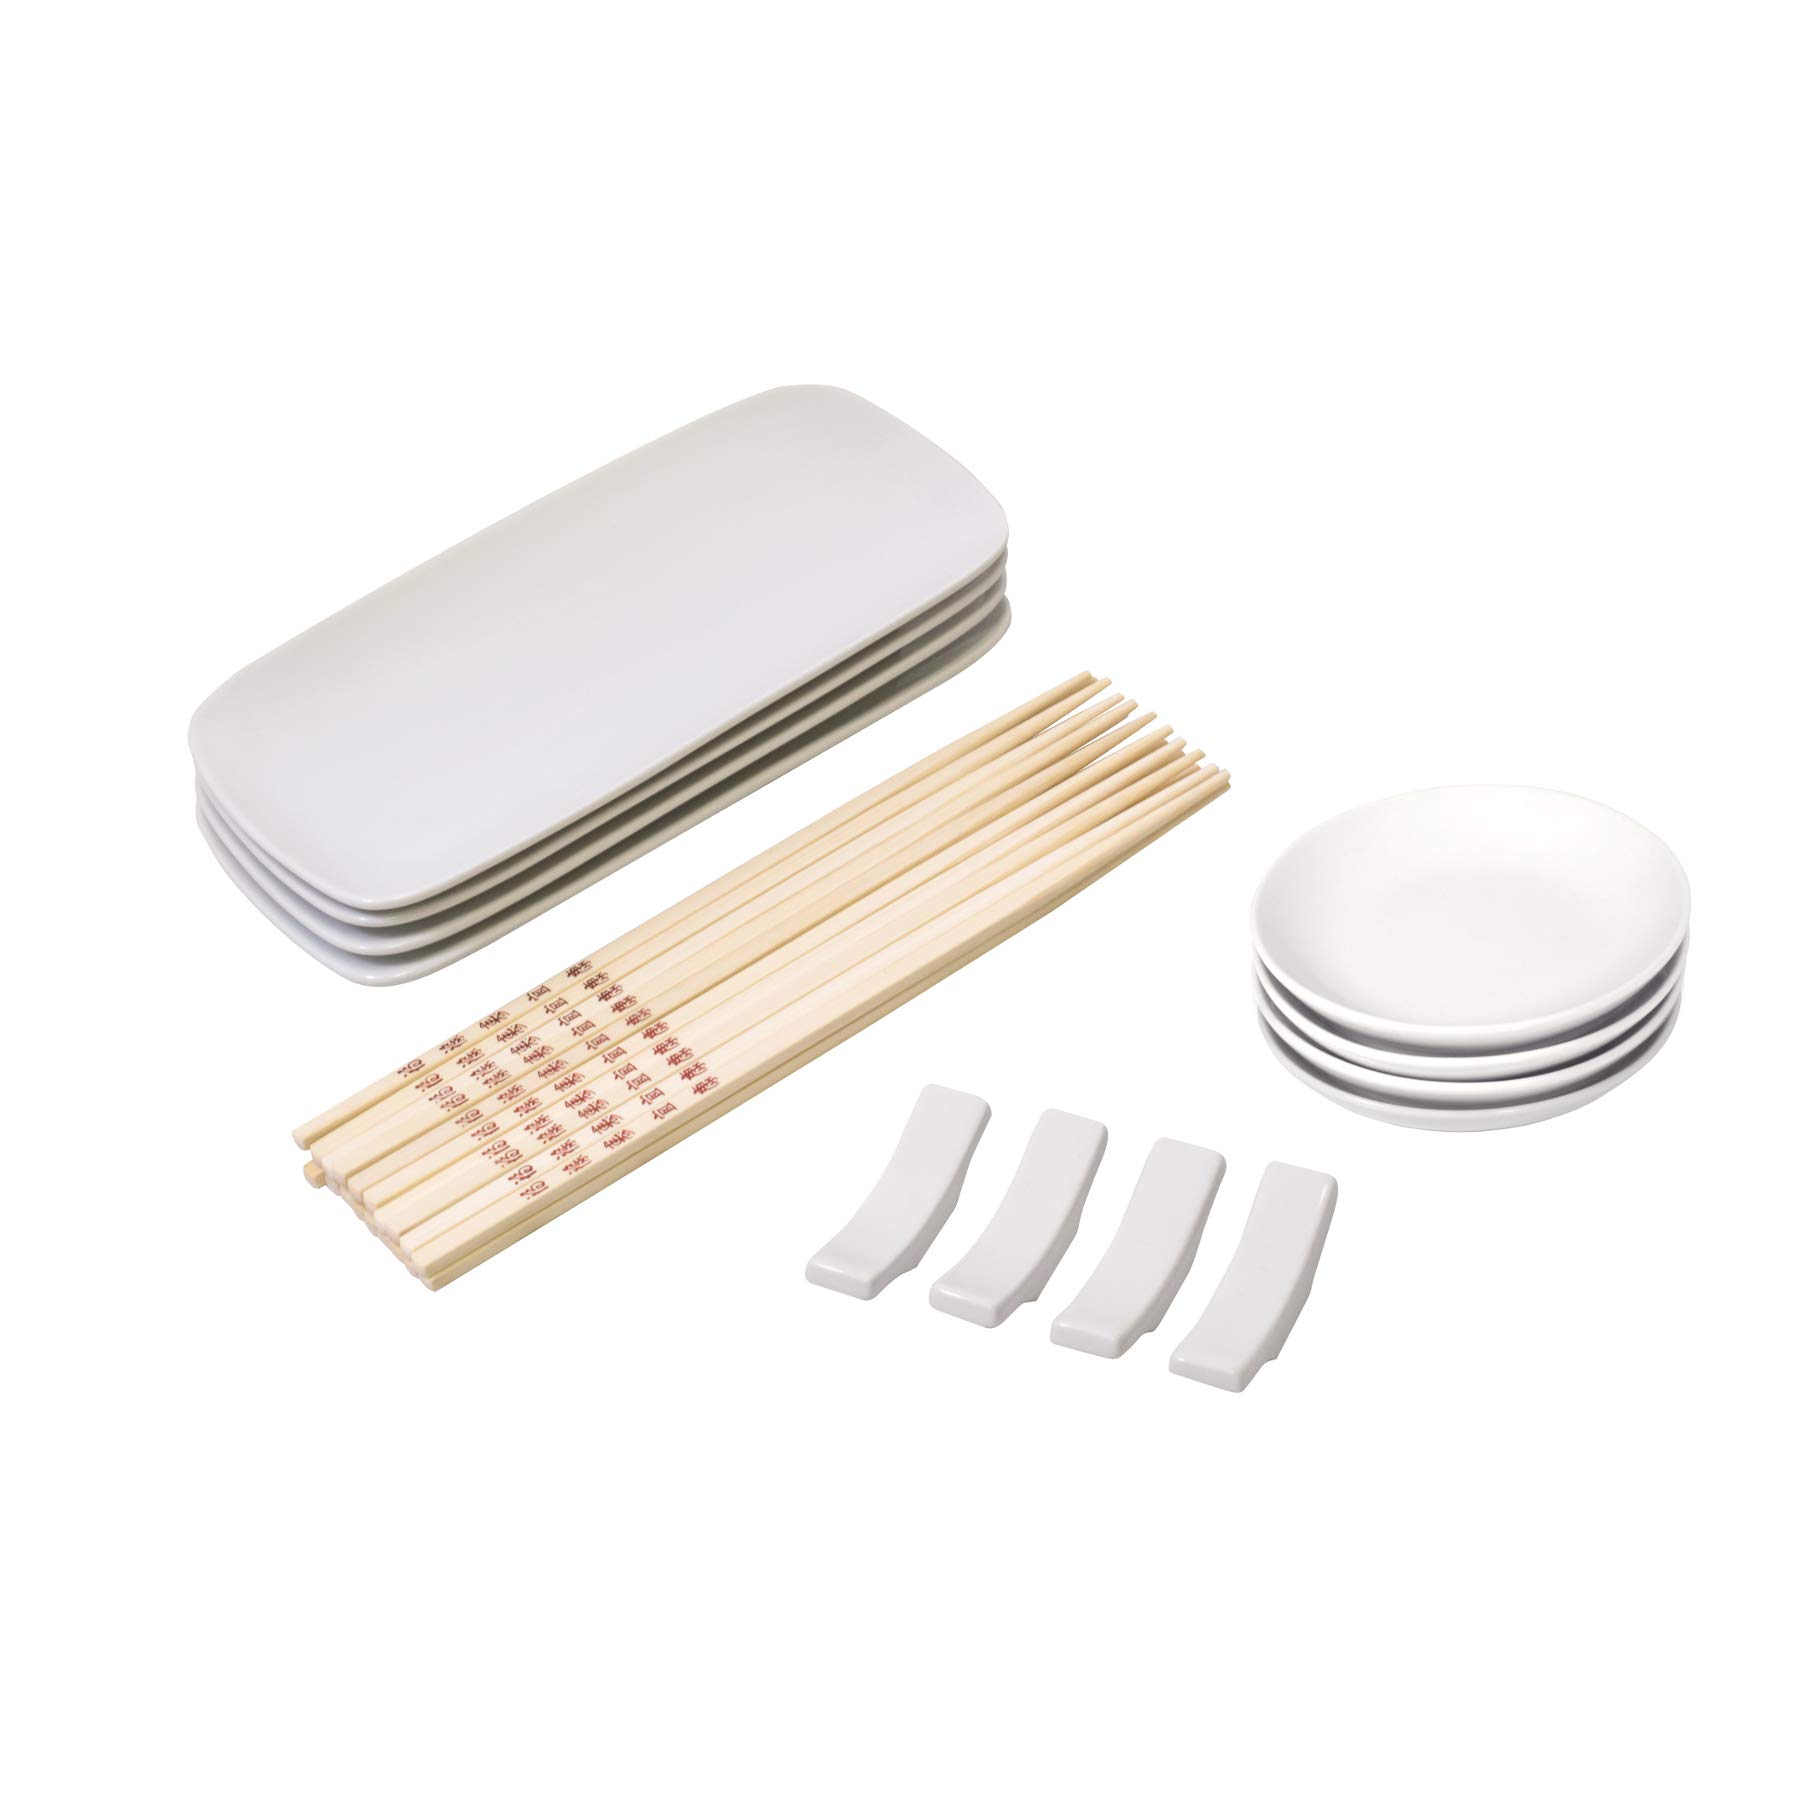 HIC Harold Import Co Porcelain and Bamboo Sushi Dinnerware Set, Service for 4